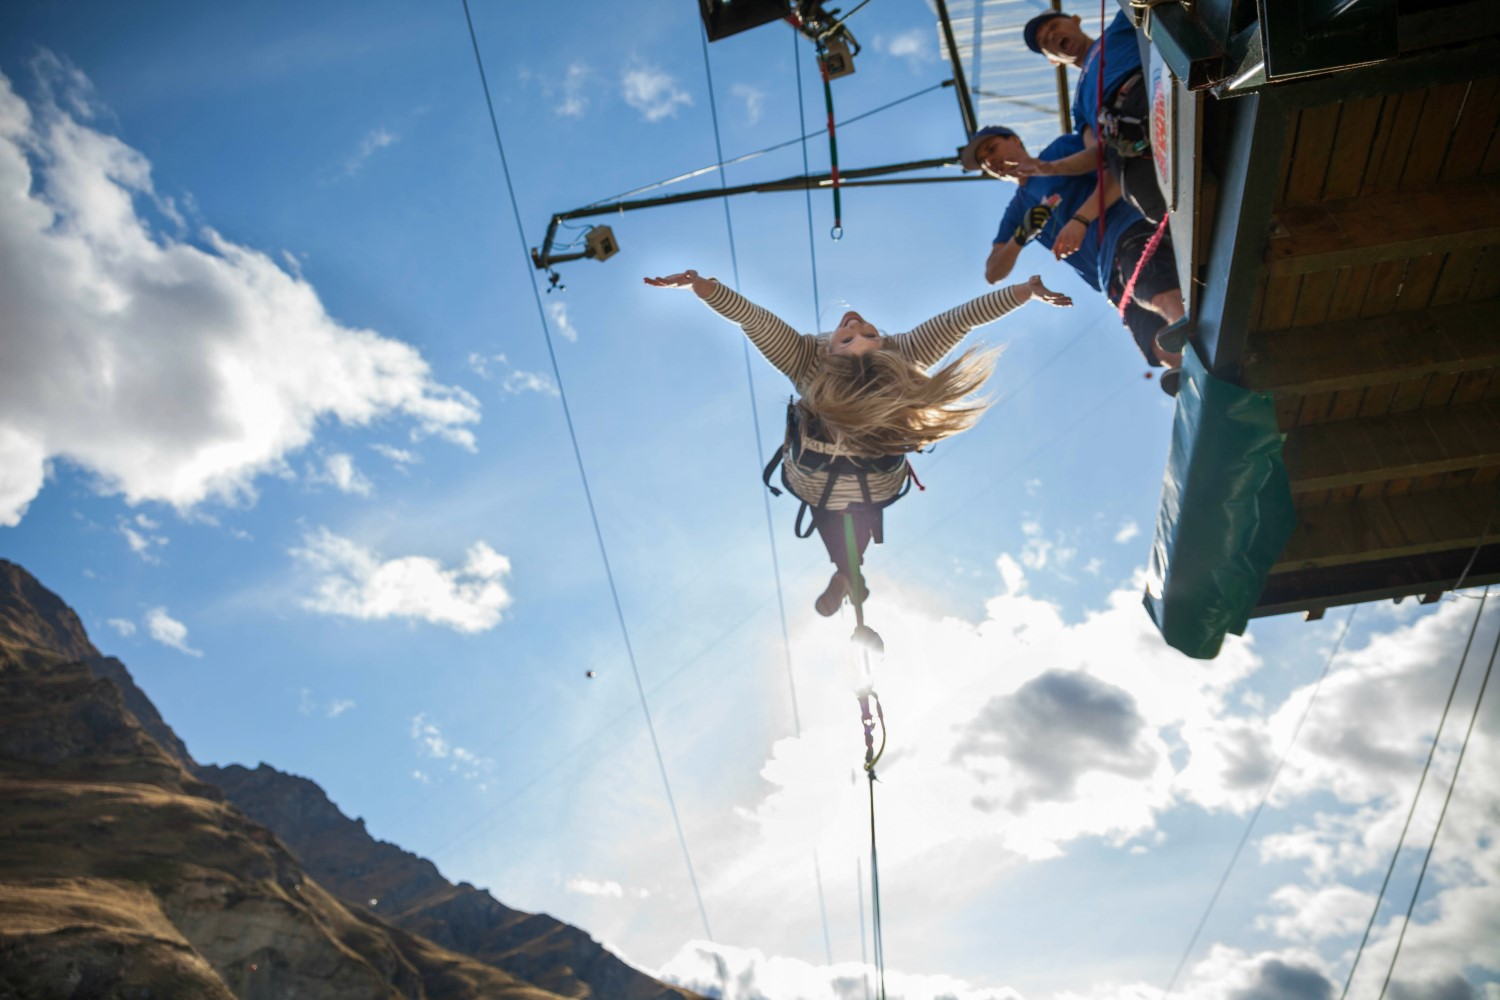 person with long blonde hair on a canyon swing